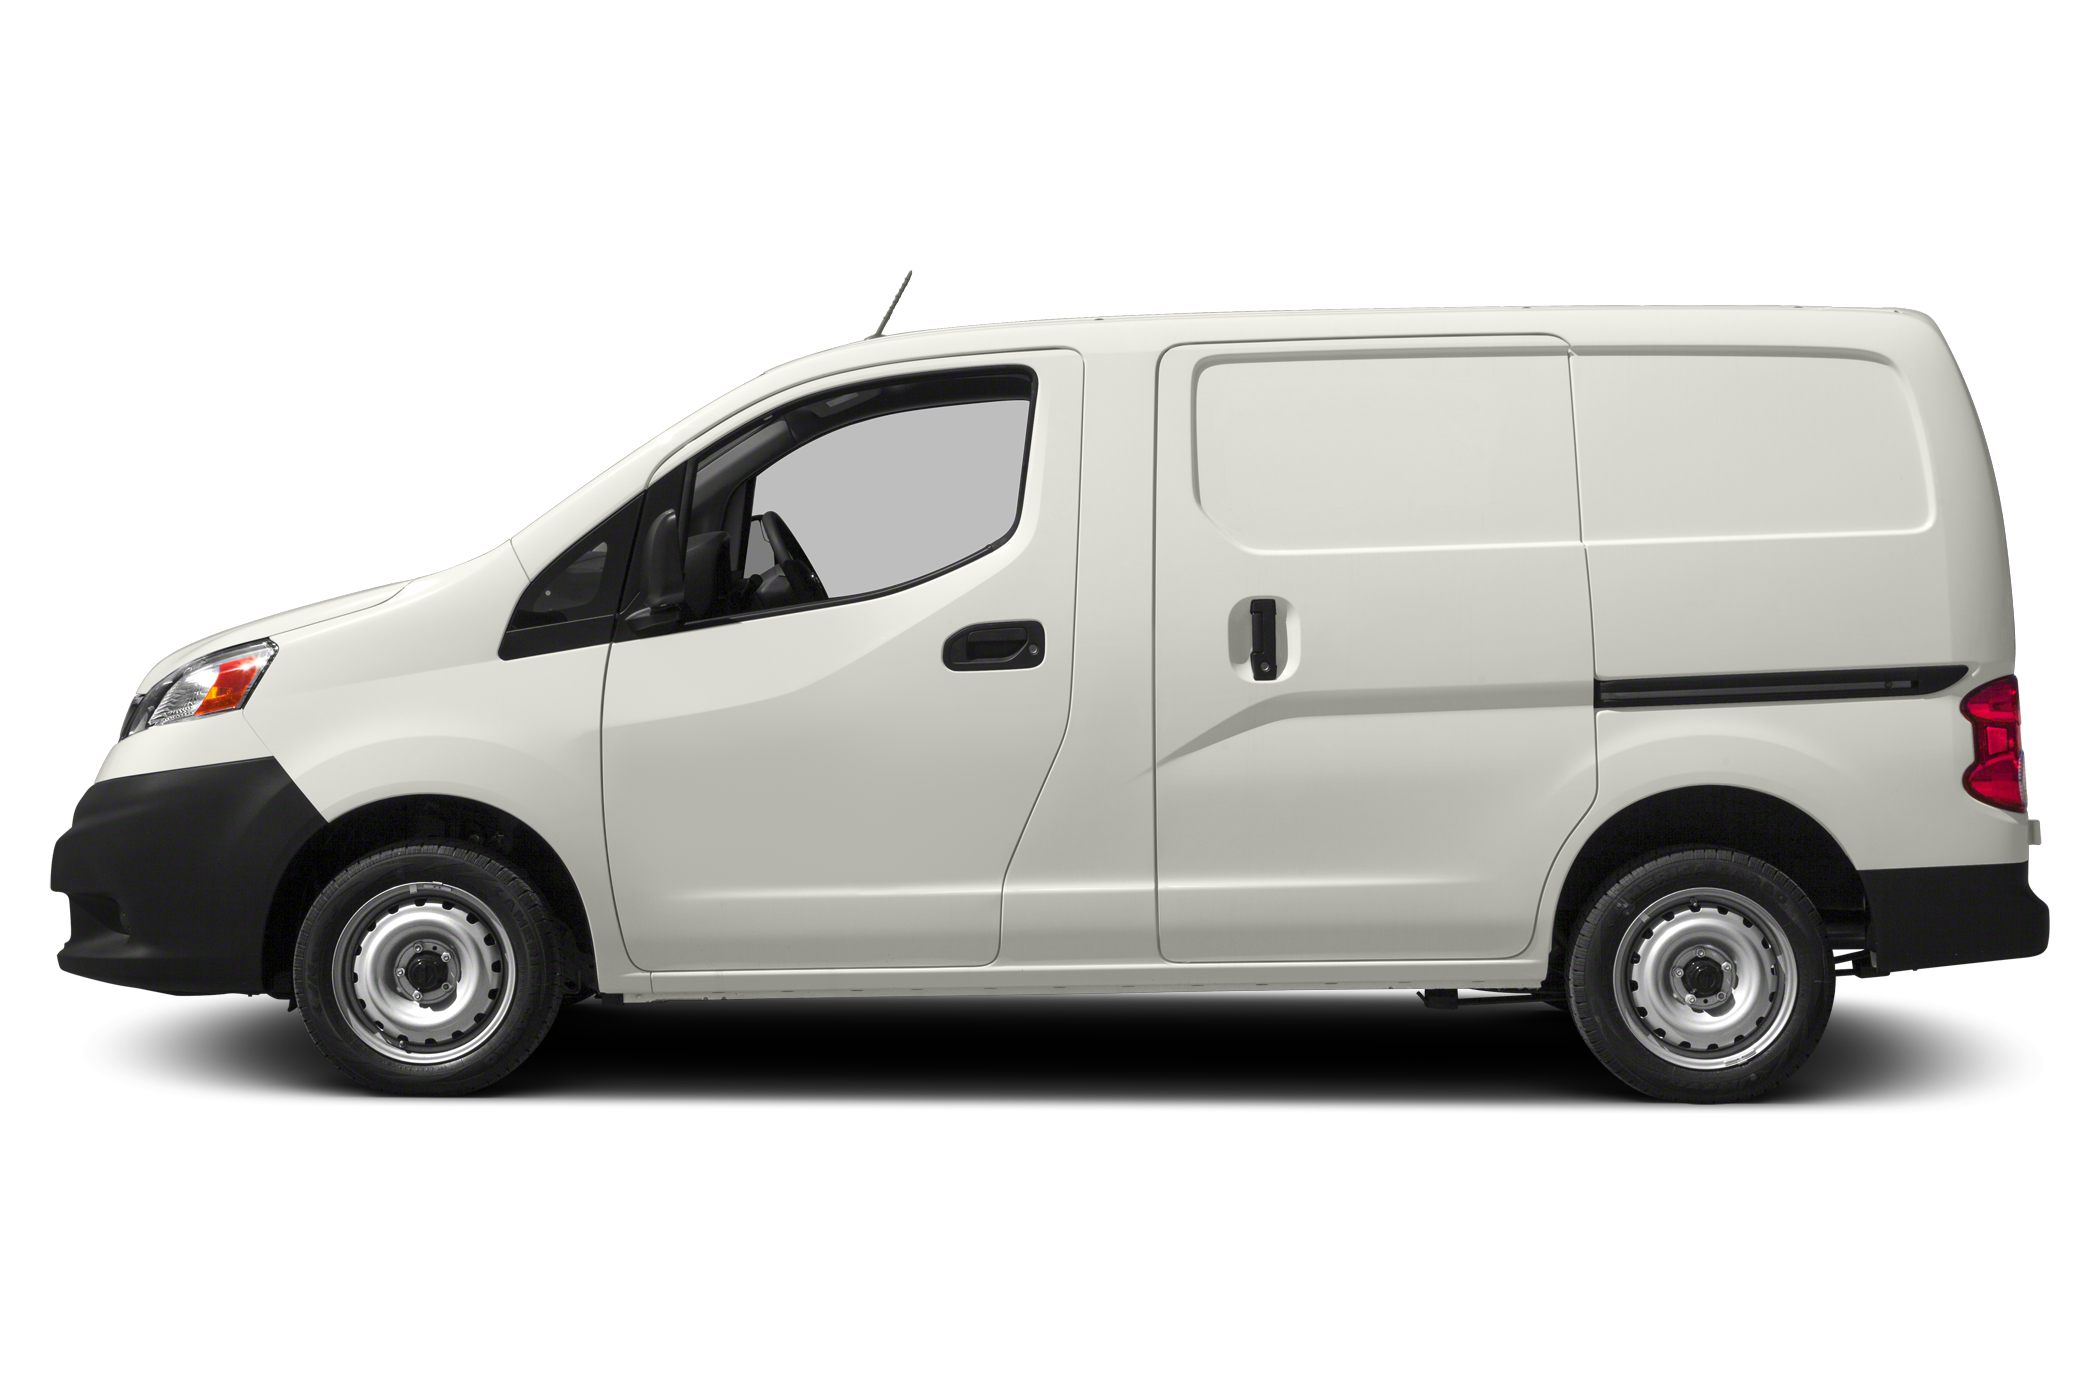 2014 Nissan Nv200 Photos Informations Articles Bestcarmag Com